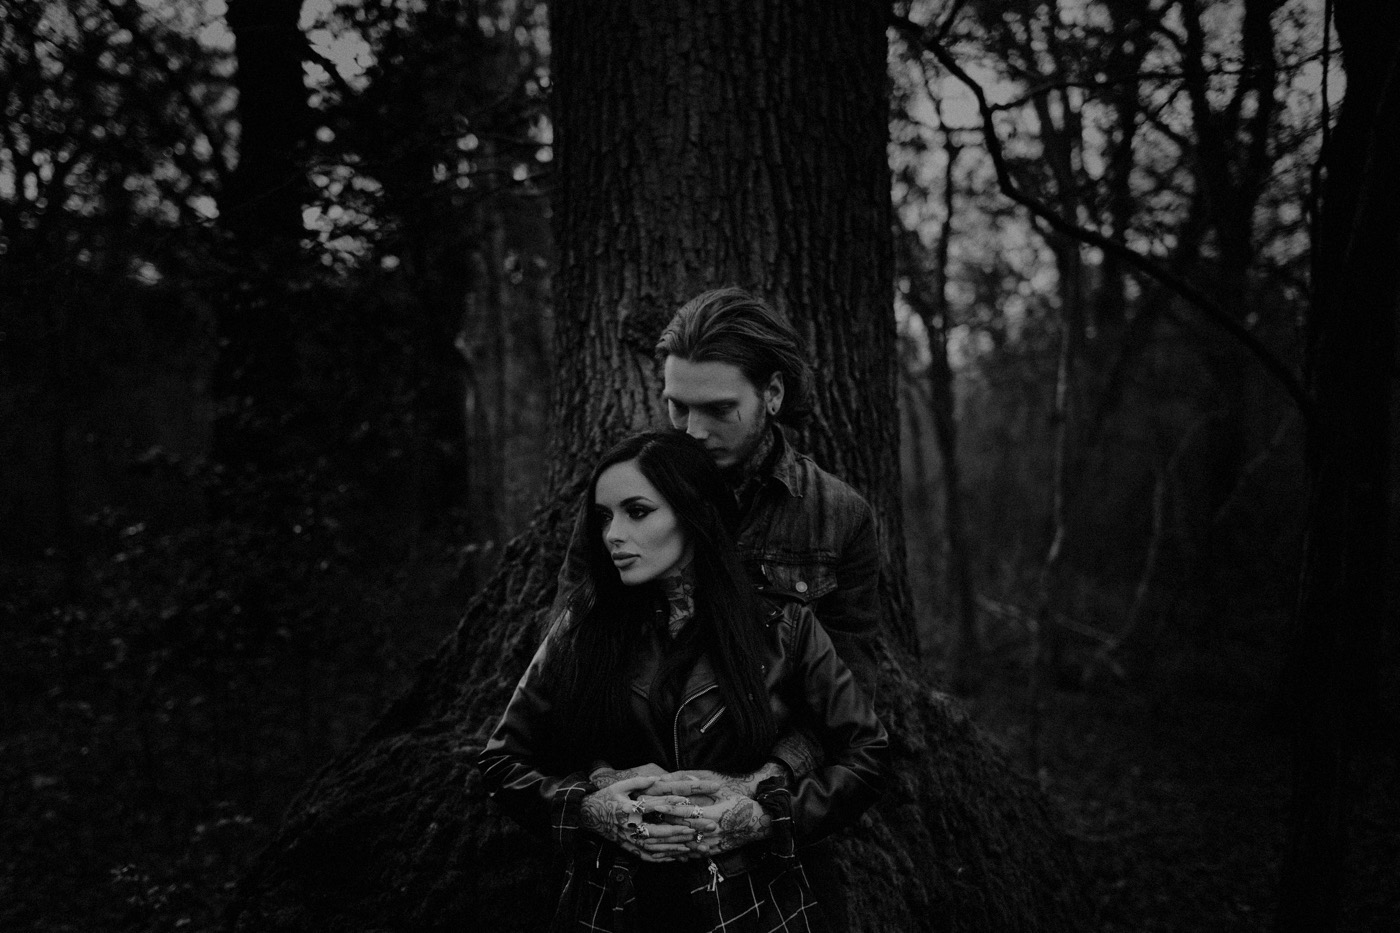 engement-photography-and-natural-couple-photoshoot-london-24.JPG